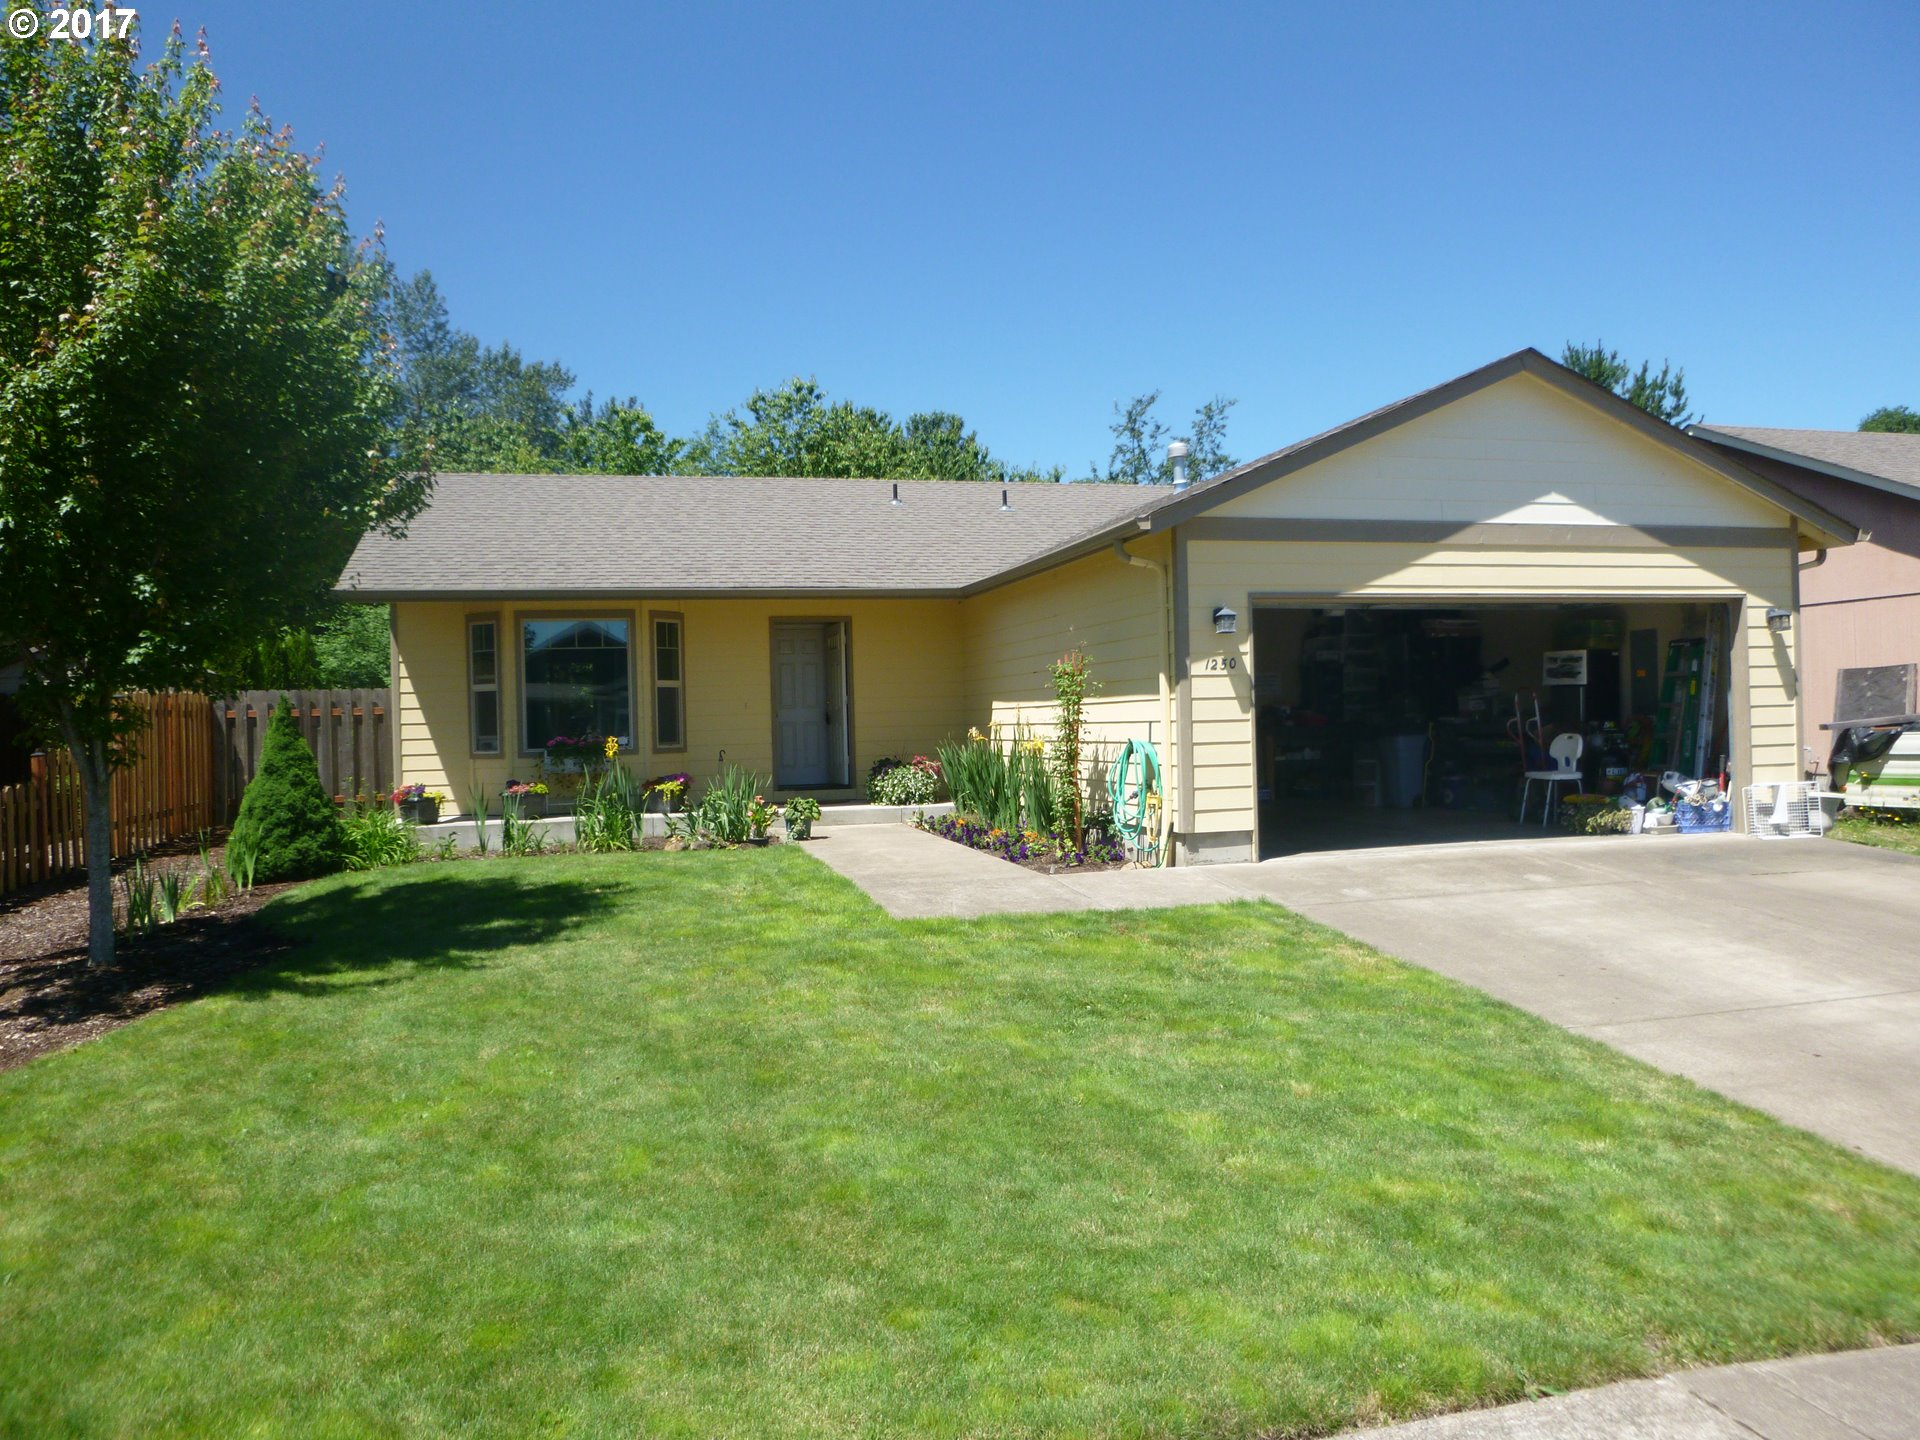 1250 W 40TH AVE, Sweet Home, OR 97386